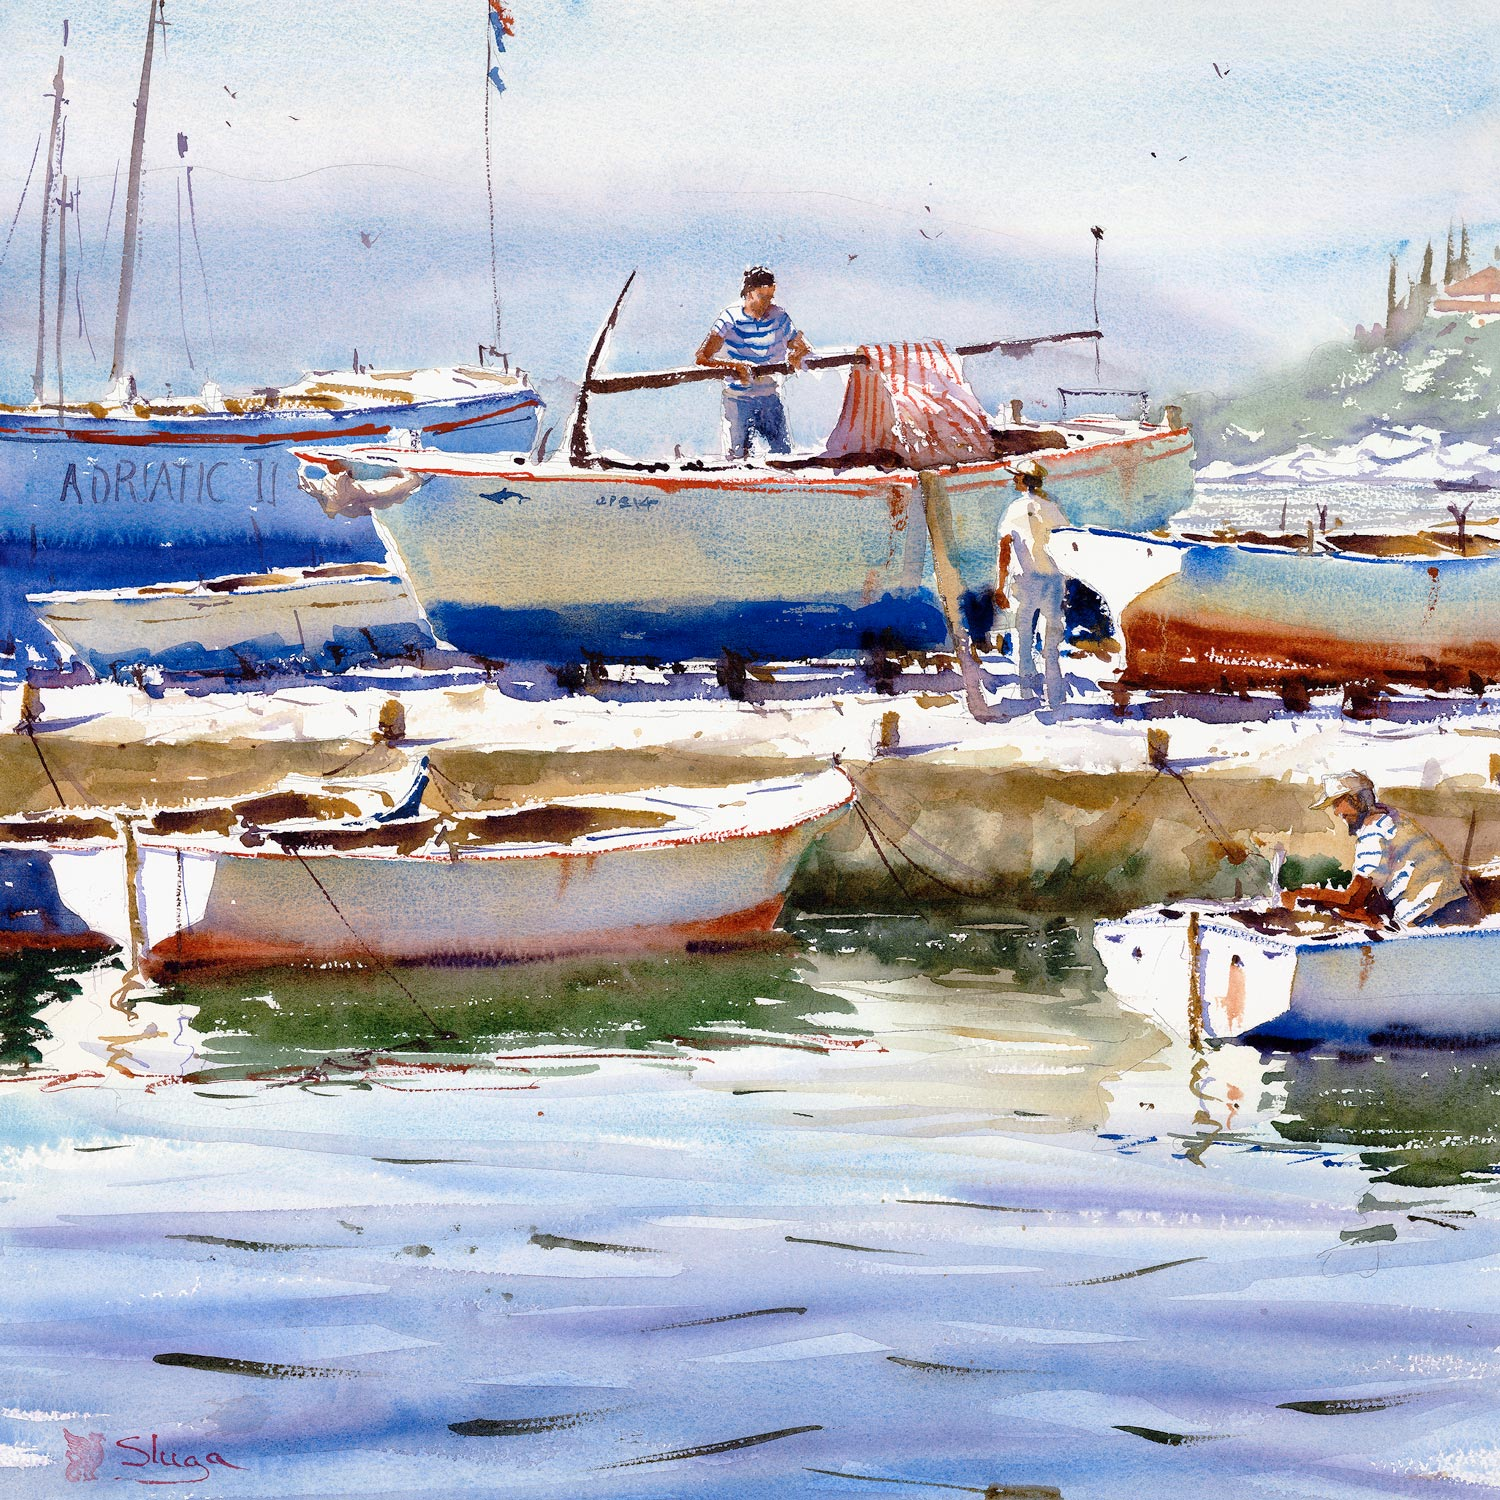 Sunday Afternoon, Dalmatia  The water in this painting has a lovely velvety feel about it. An initial wash was put down using Cerulean Blue and changing it to Cobalt Blue as I came forward (or to the bottom of the page). While this was still wet, I added some violet ripples with thicker paint. I made sure this was thick enough to bleed just a little and produce soft edges. Too thin and it would have disappeared altogether. After this was dry, I glazed randomly and gently over the foreground with a watery wash of Violet, just to give it a little more depth. Finally, I added those dark strokes just to give it a little more punch. Take note of the tones of the reflections of the boats in this painting.